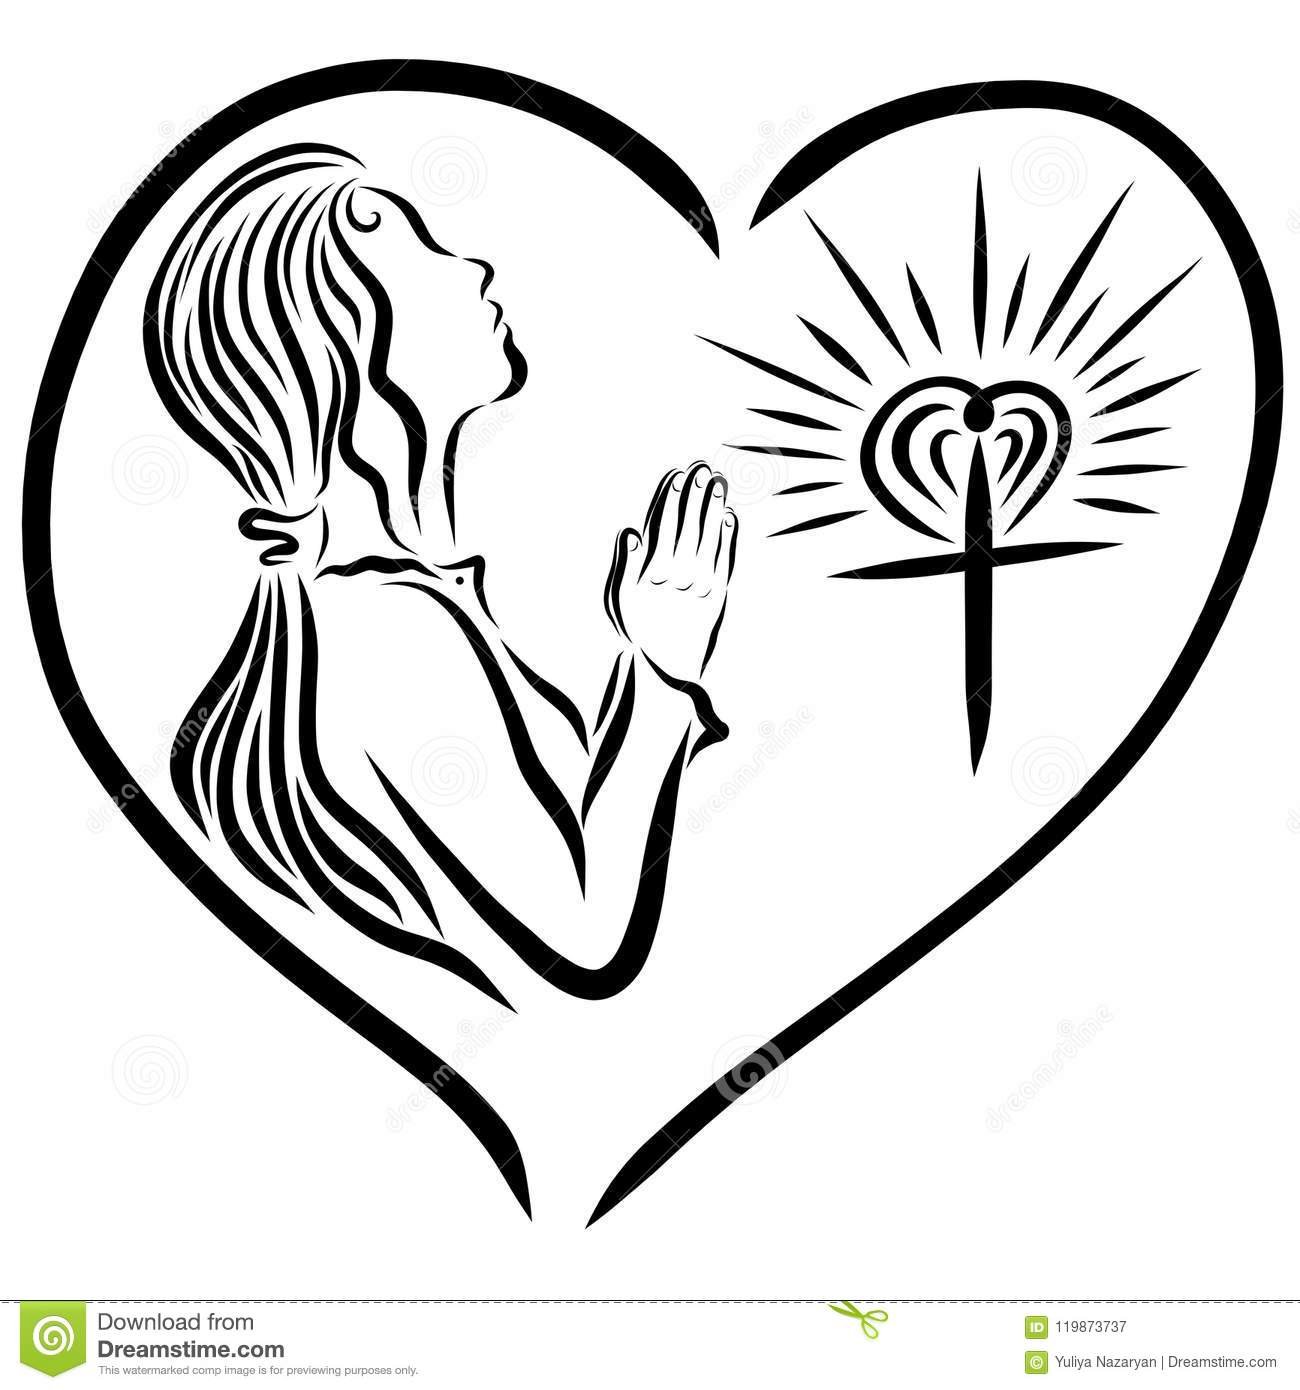 A girl praying to God, and a radiant cross, God`s love protects